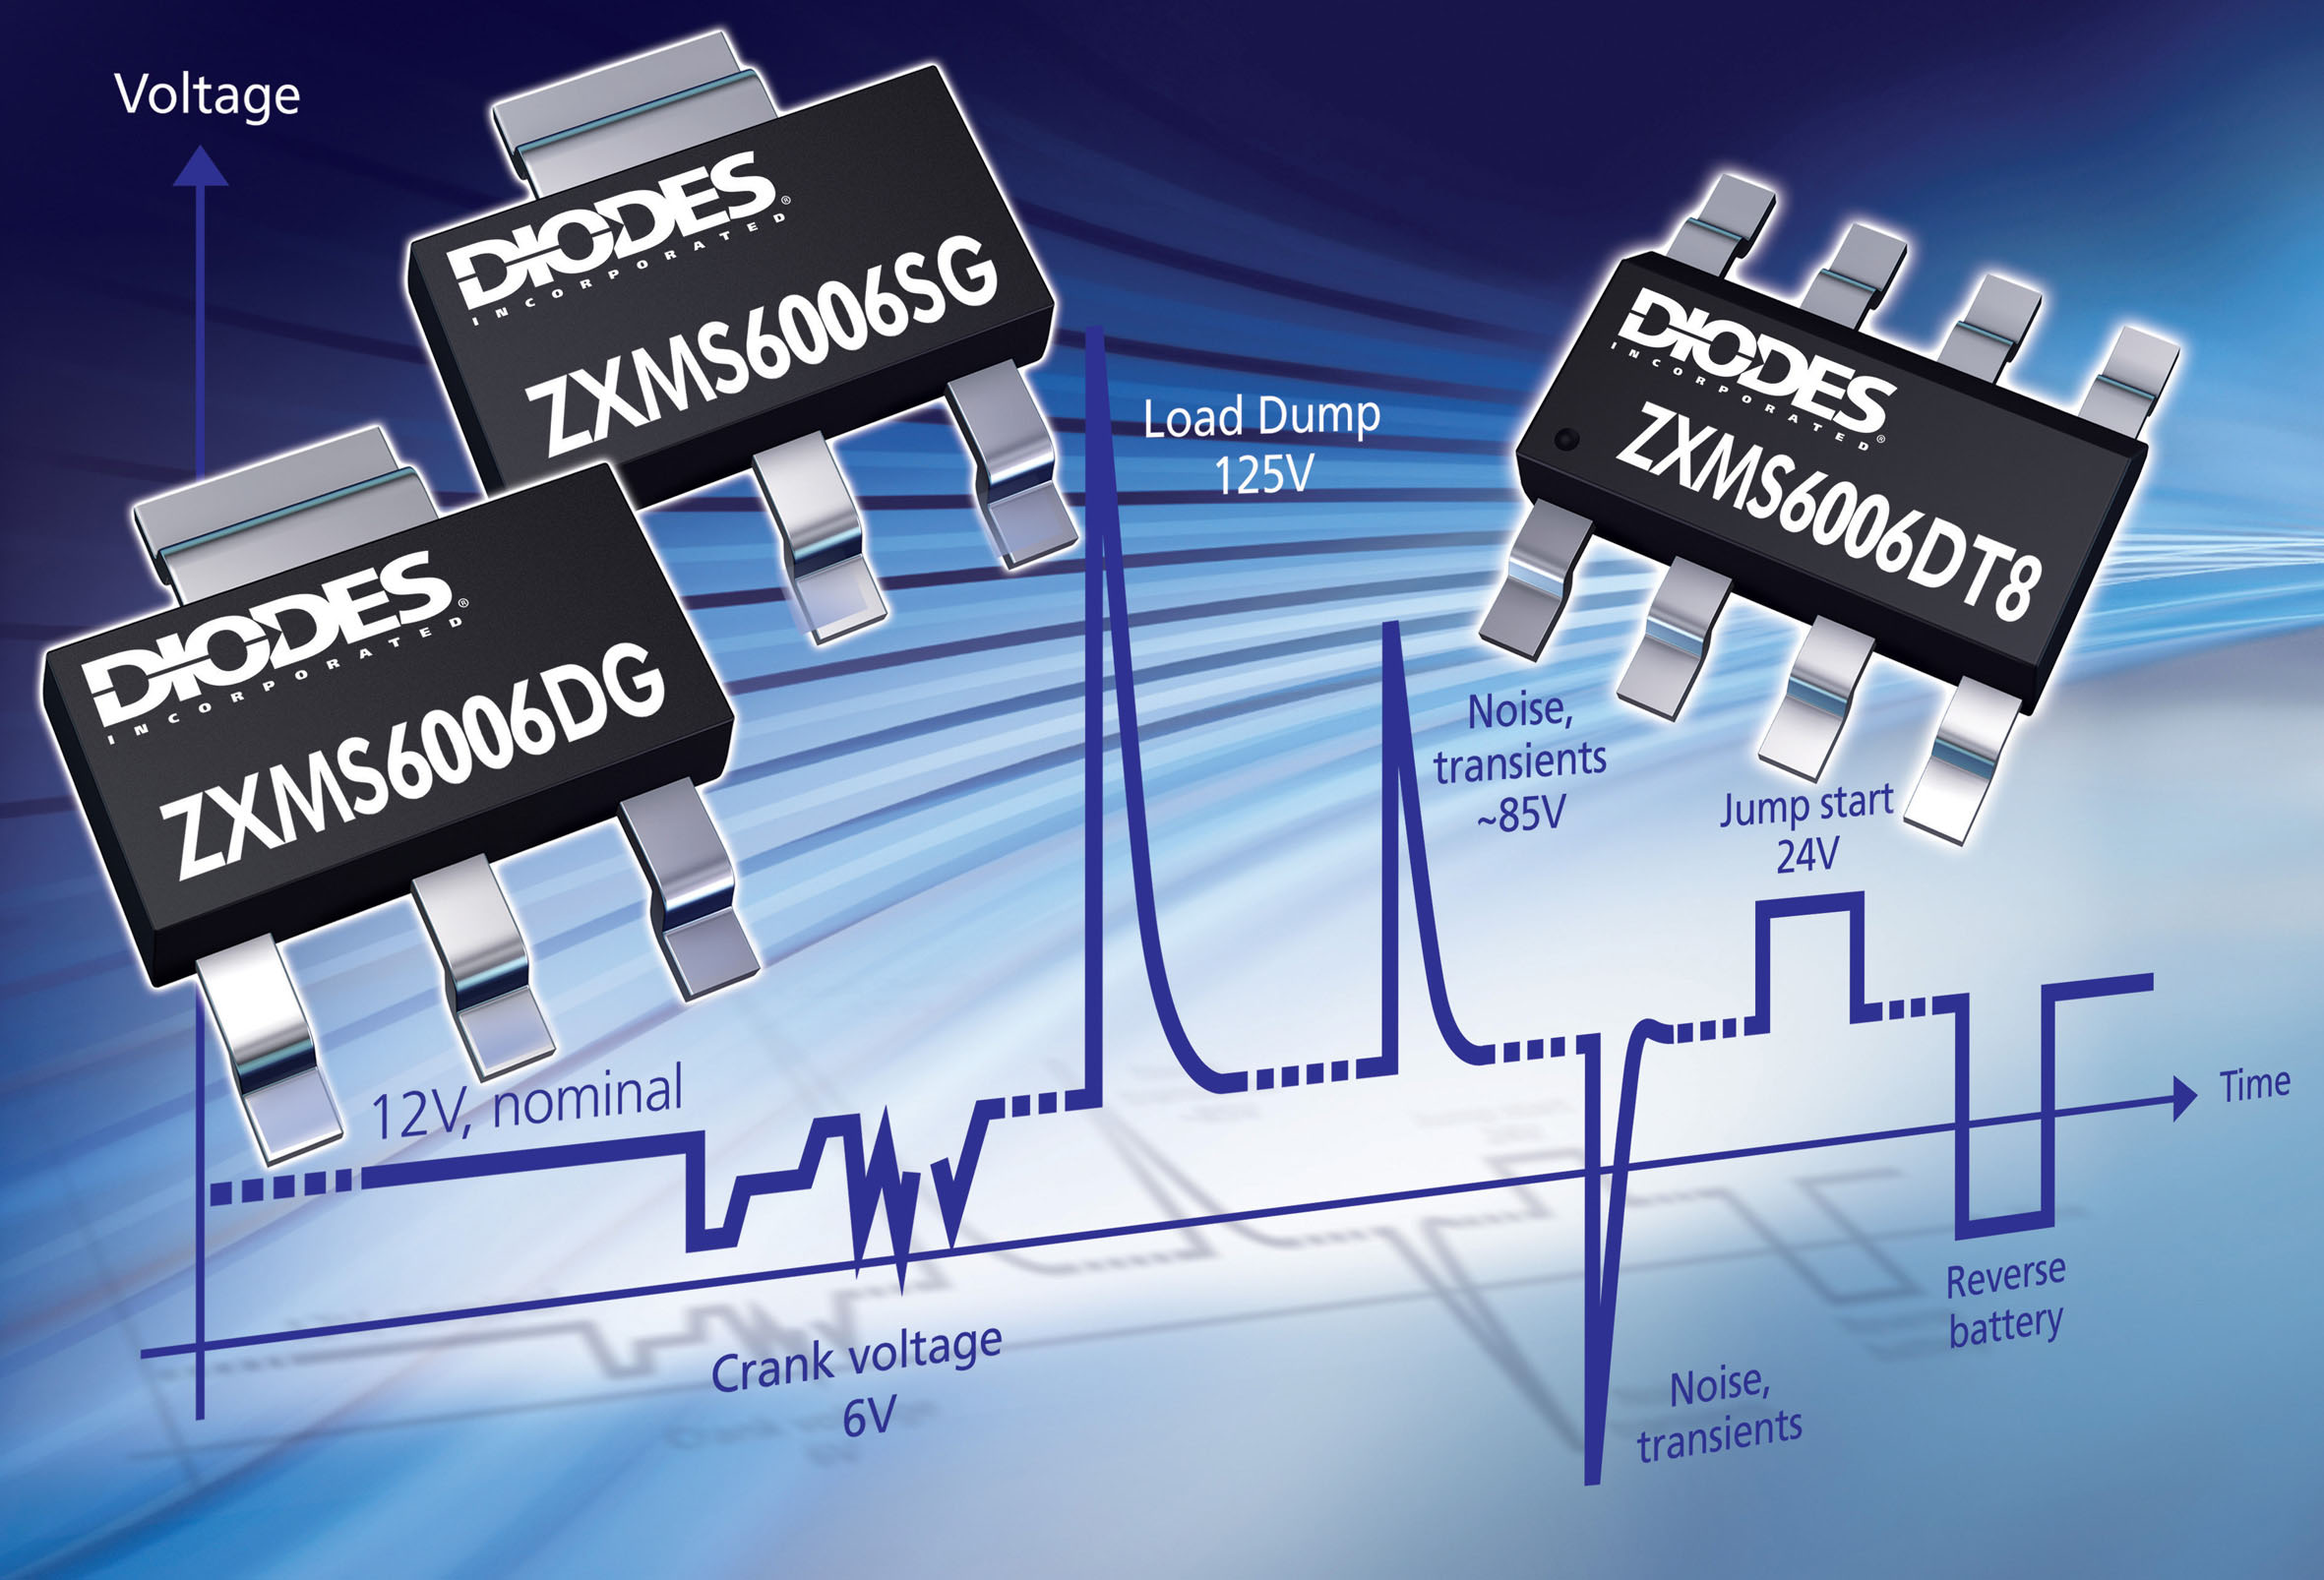 Diodes' Self-Protected MOSFETs Raise Protection Levels for Inductive Loads